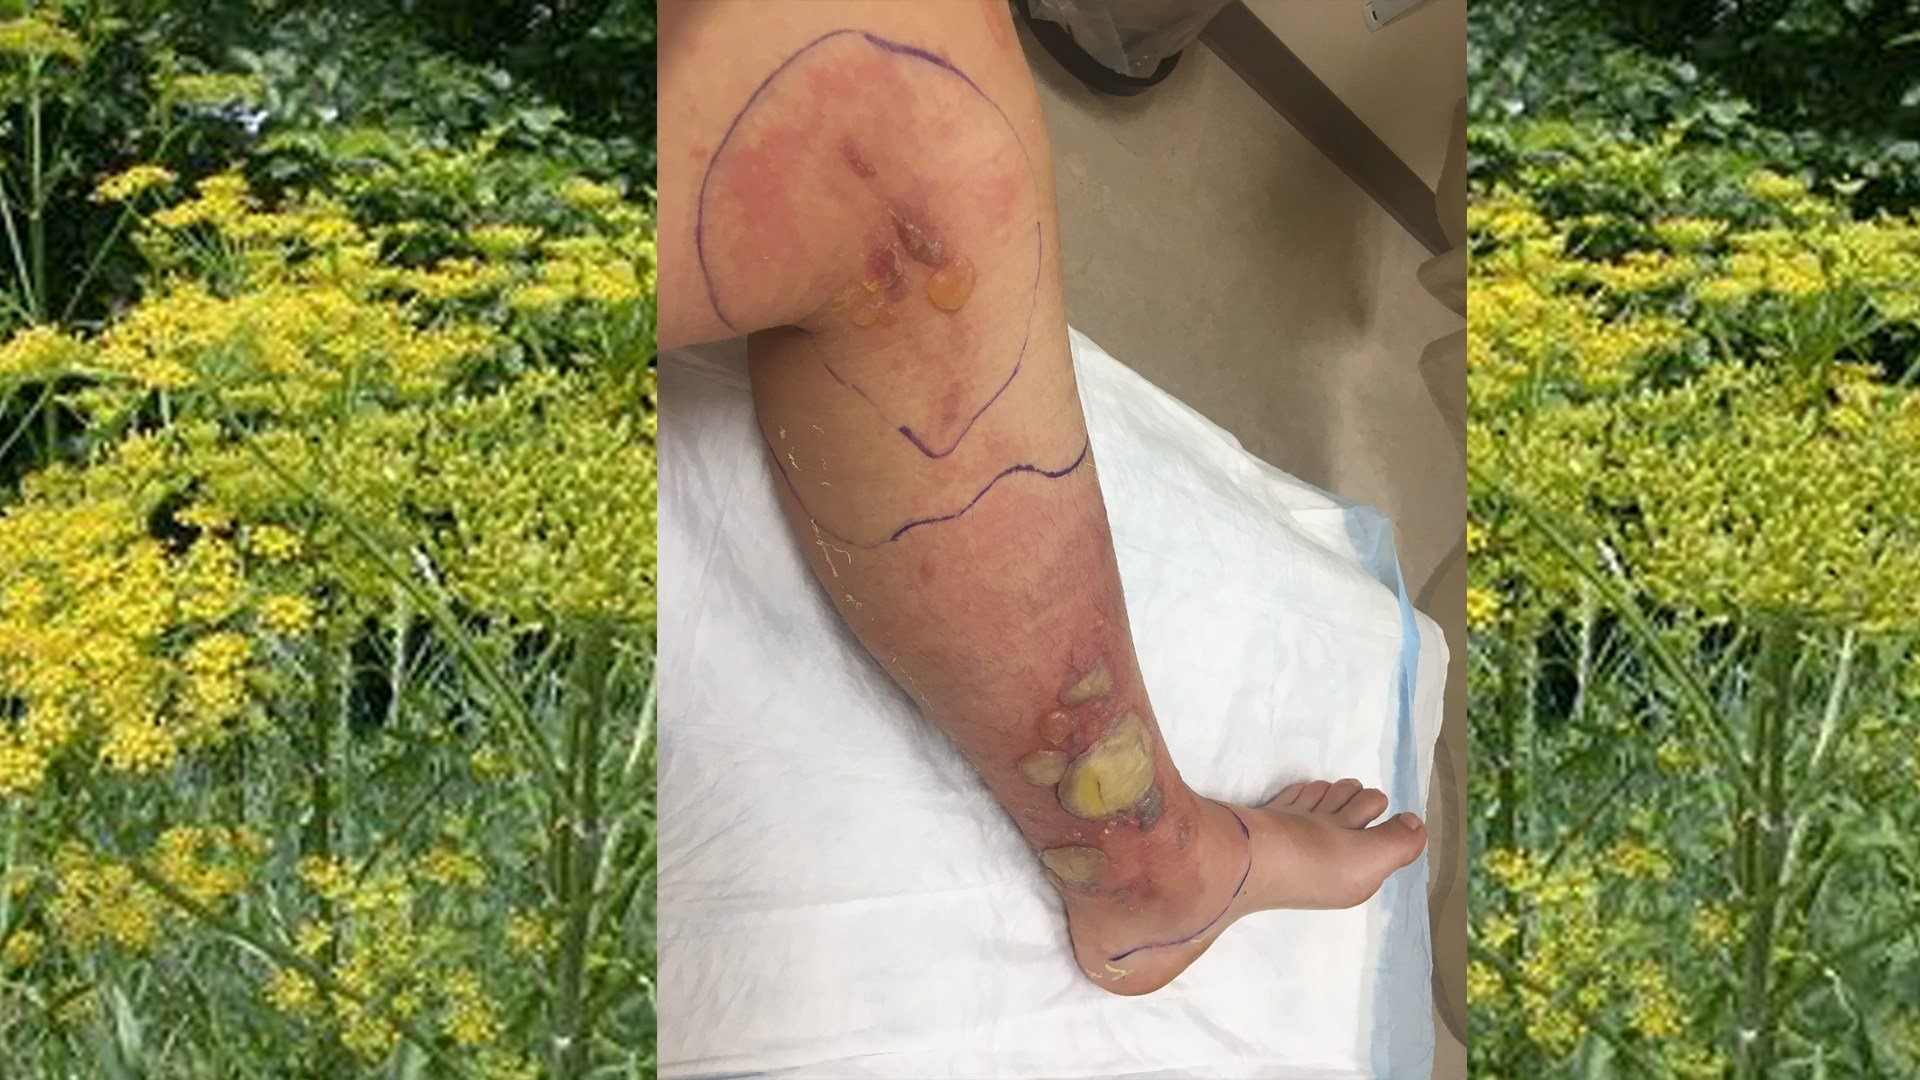 Invasive wild parsnip plant leaves New England woman with severe burns